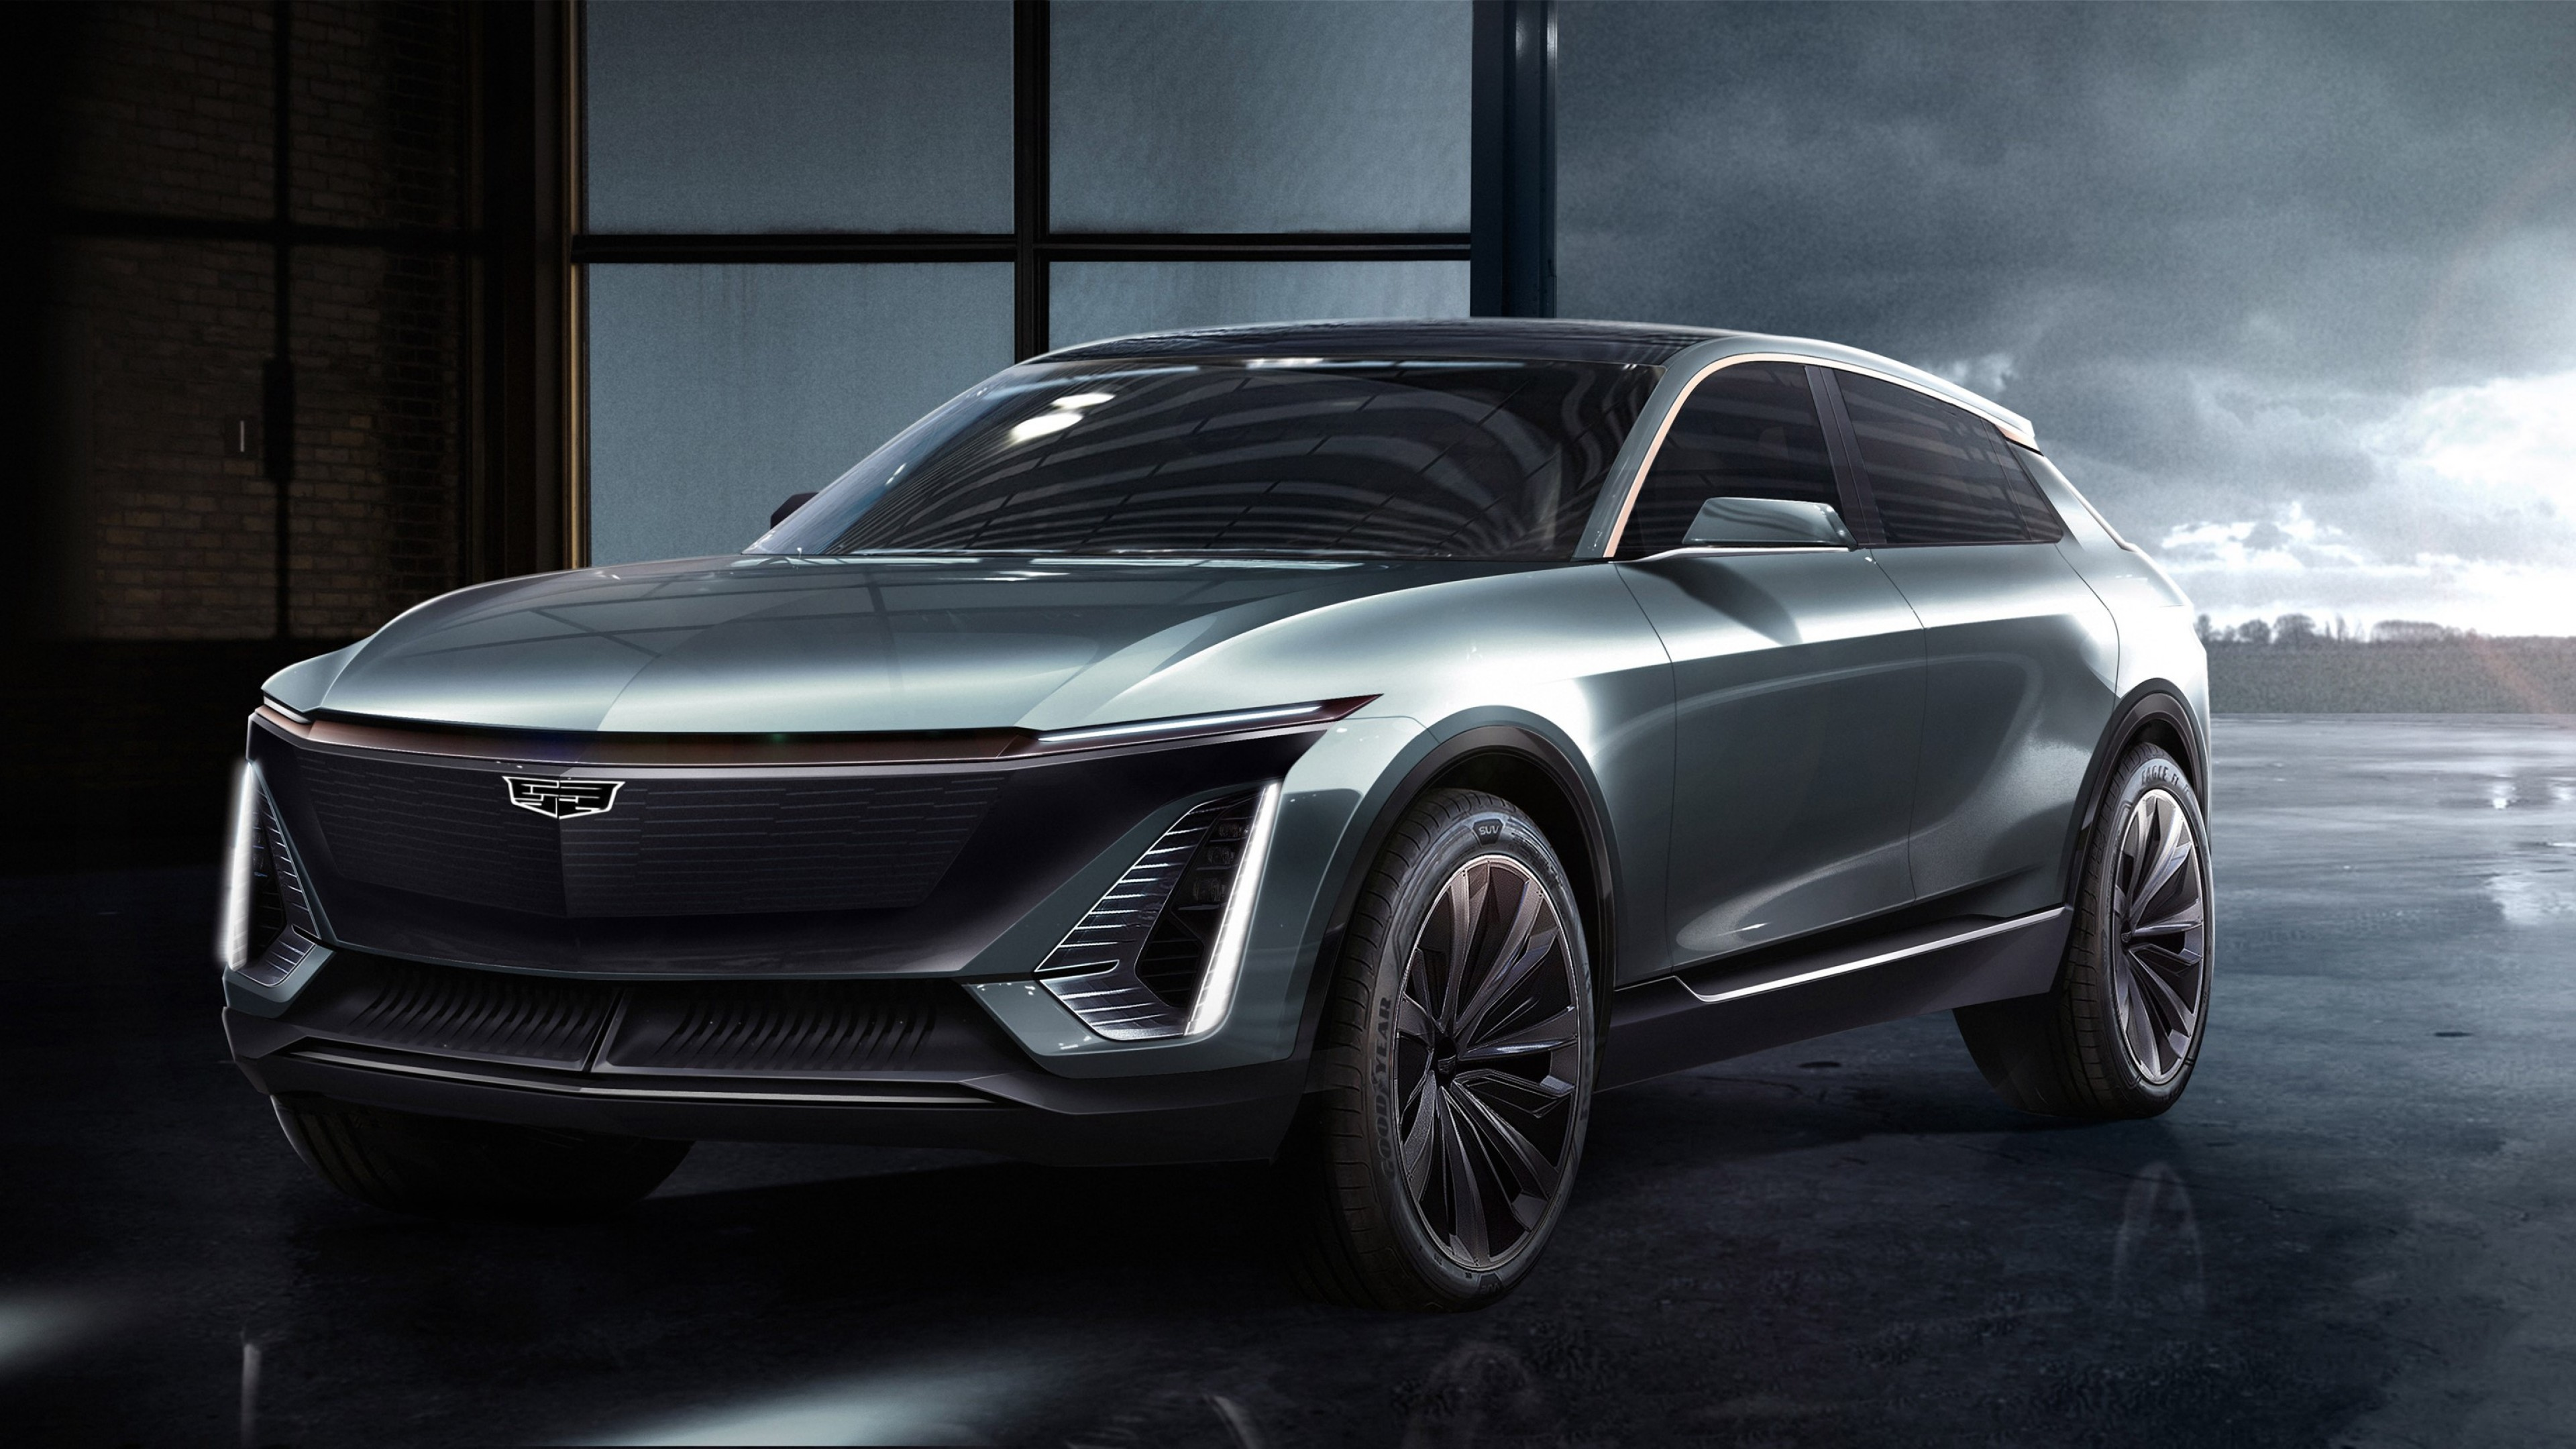 Wallpaper Cadillac EV, SUV, 2019 Cars, 2019 Detroit Auto